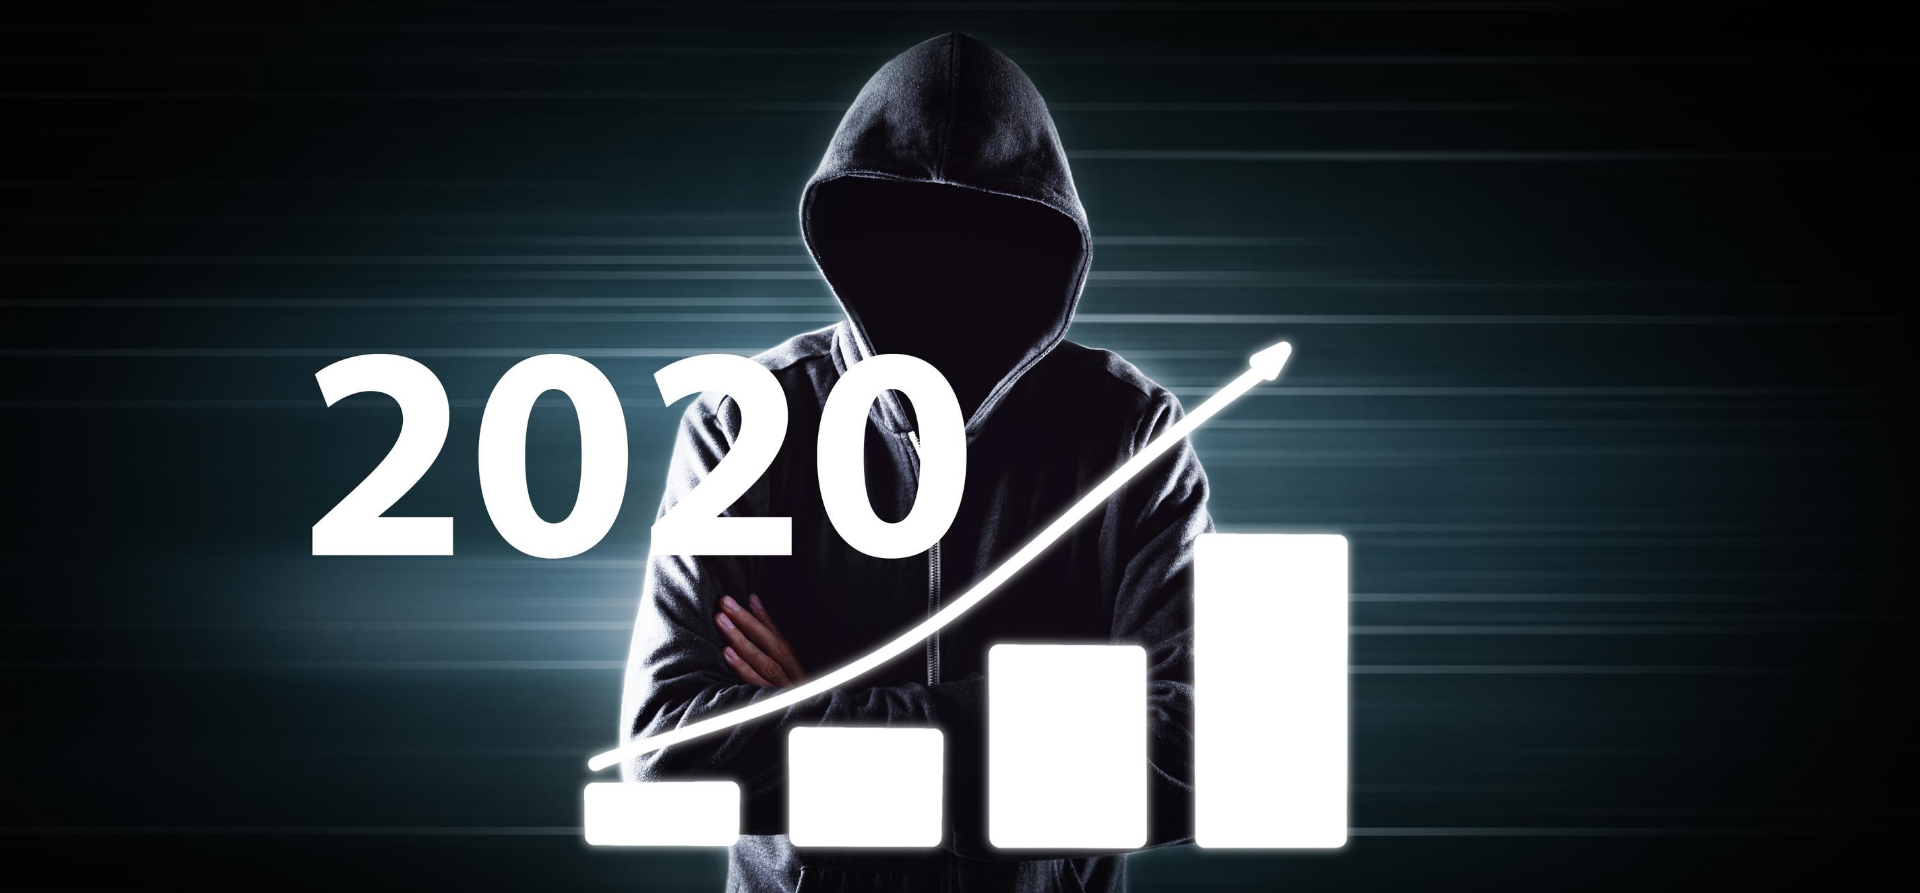 Cyber Criminals Increase in 2020